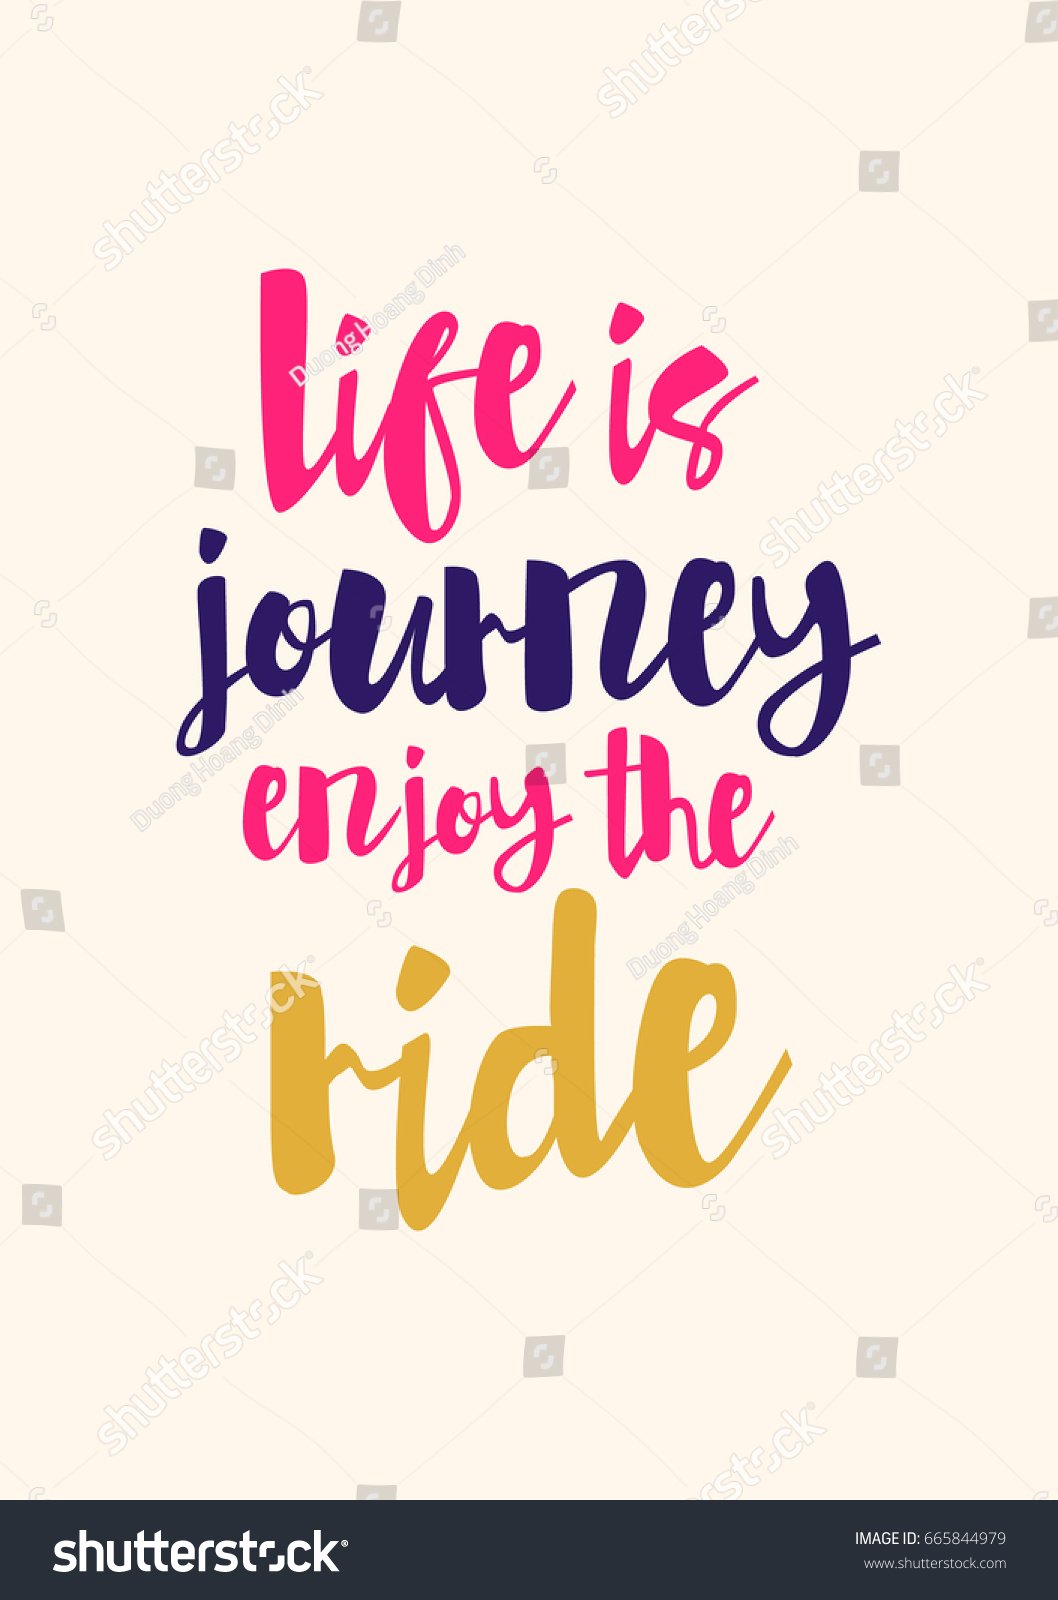 Quotes Life Journey Lettering Quotes Motivation About Life Quote Stock Vector